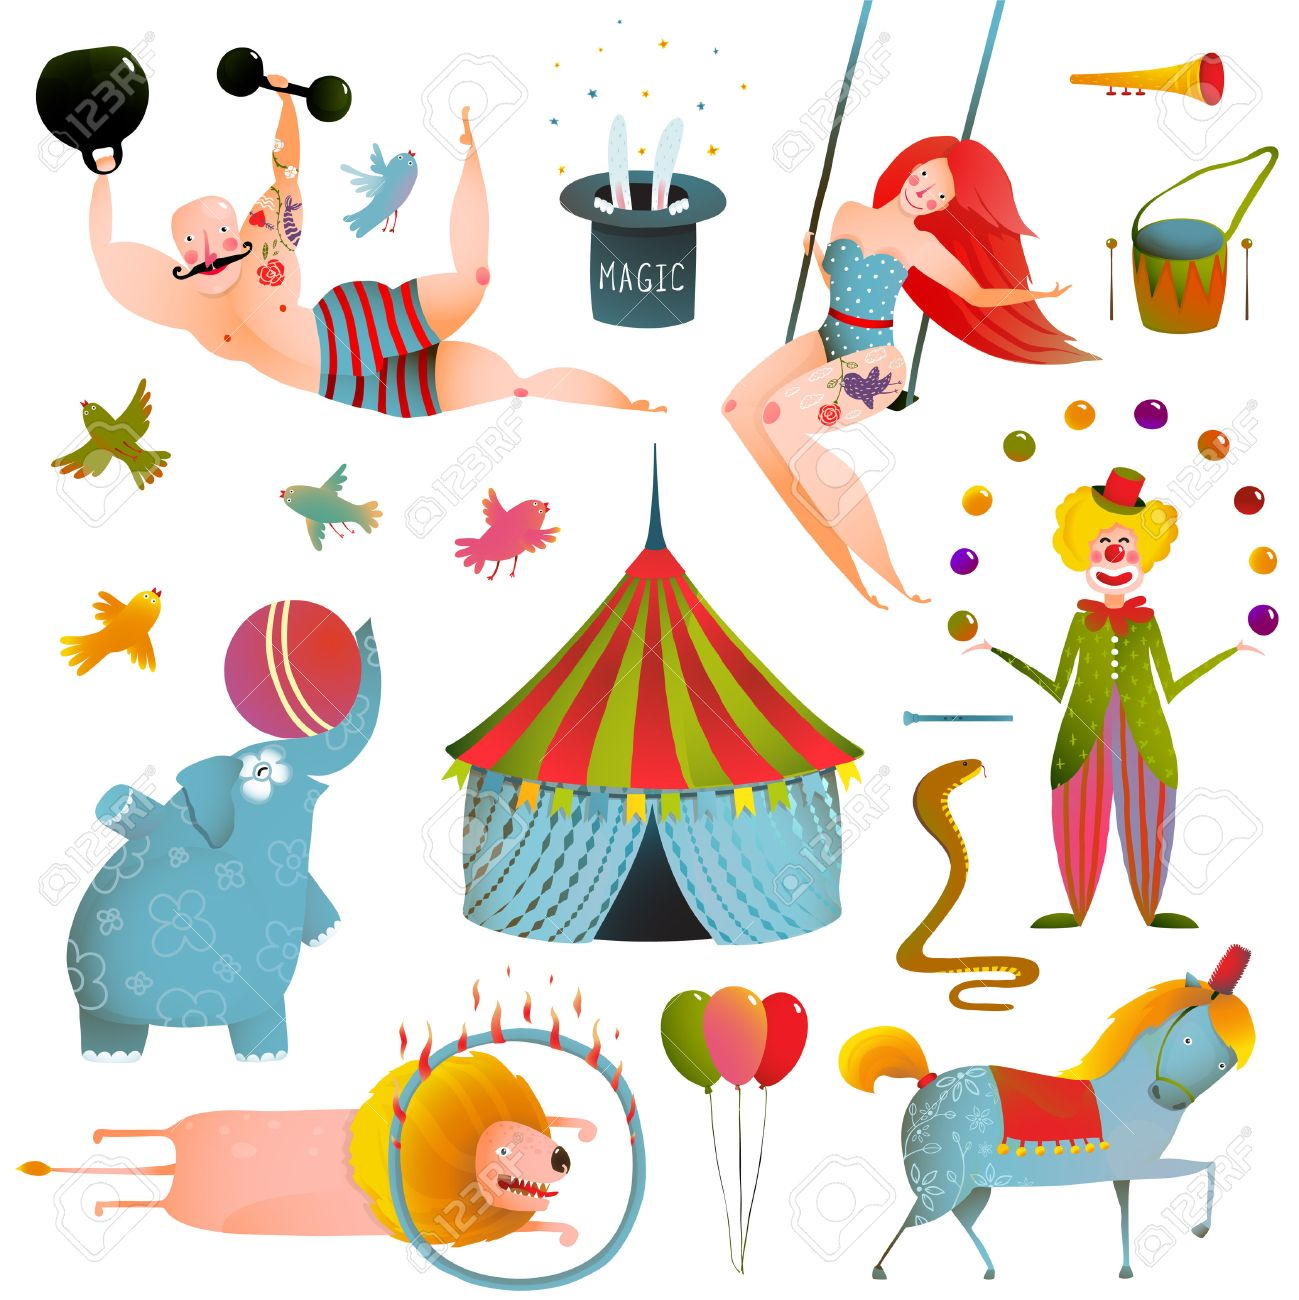 Circus Carnival Show Clip Art Vintage Collection. Fun and cute performance with animals, clown, strong man and horse set. Vector illustration. - 45635118